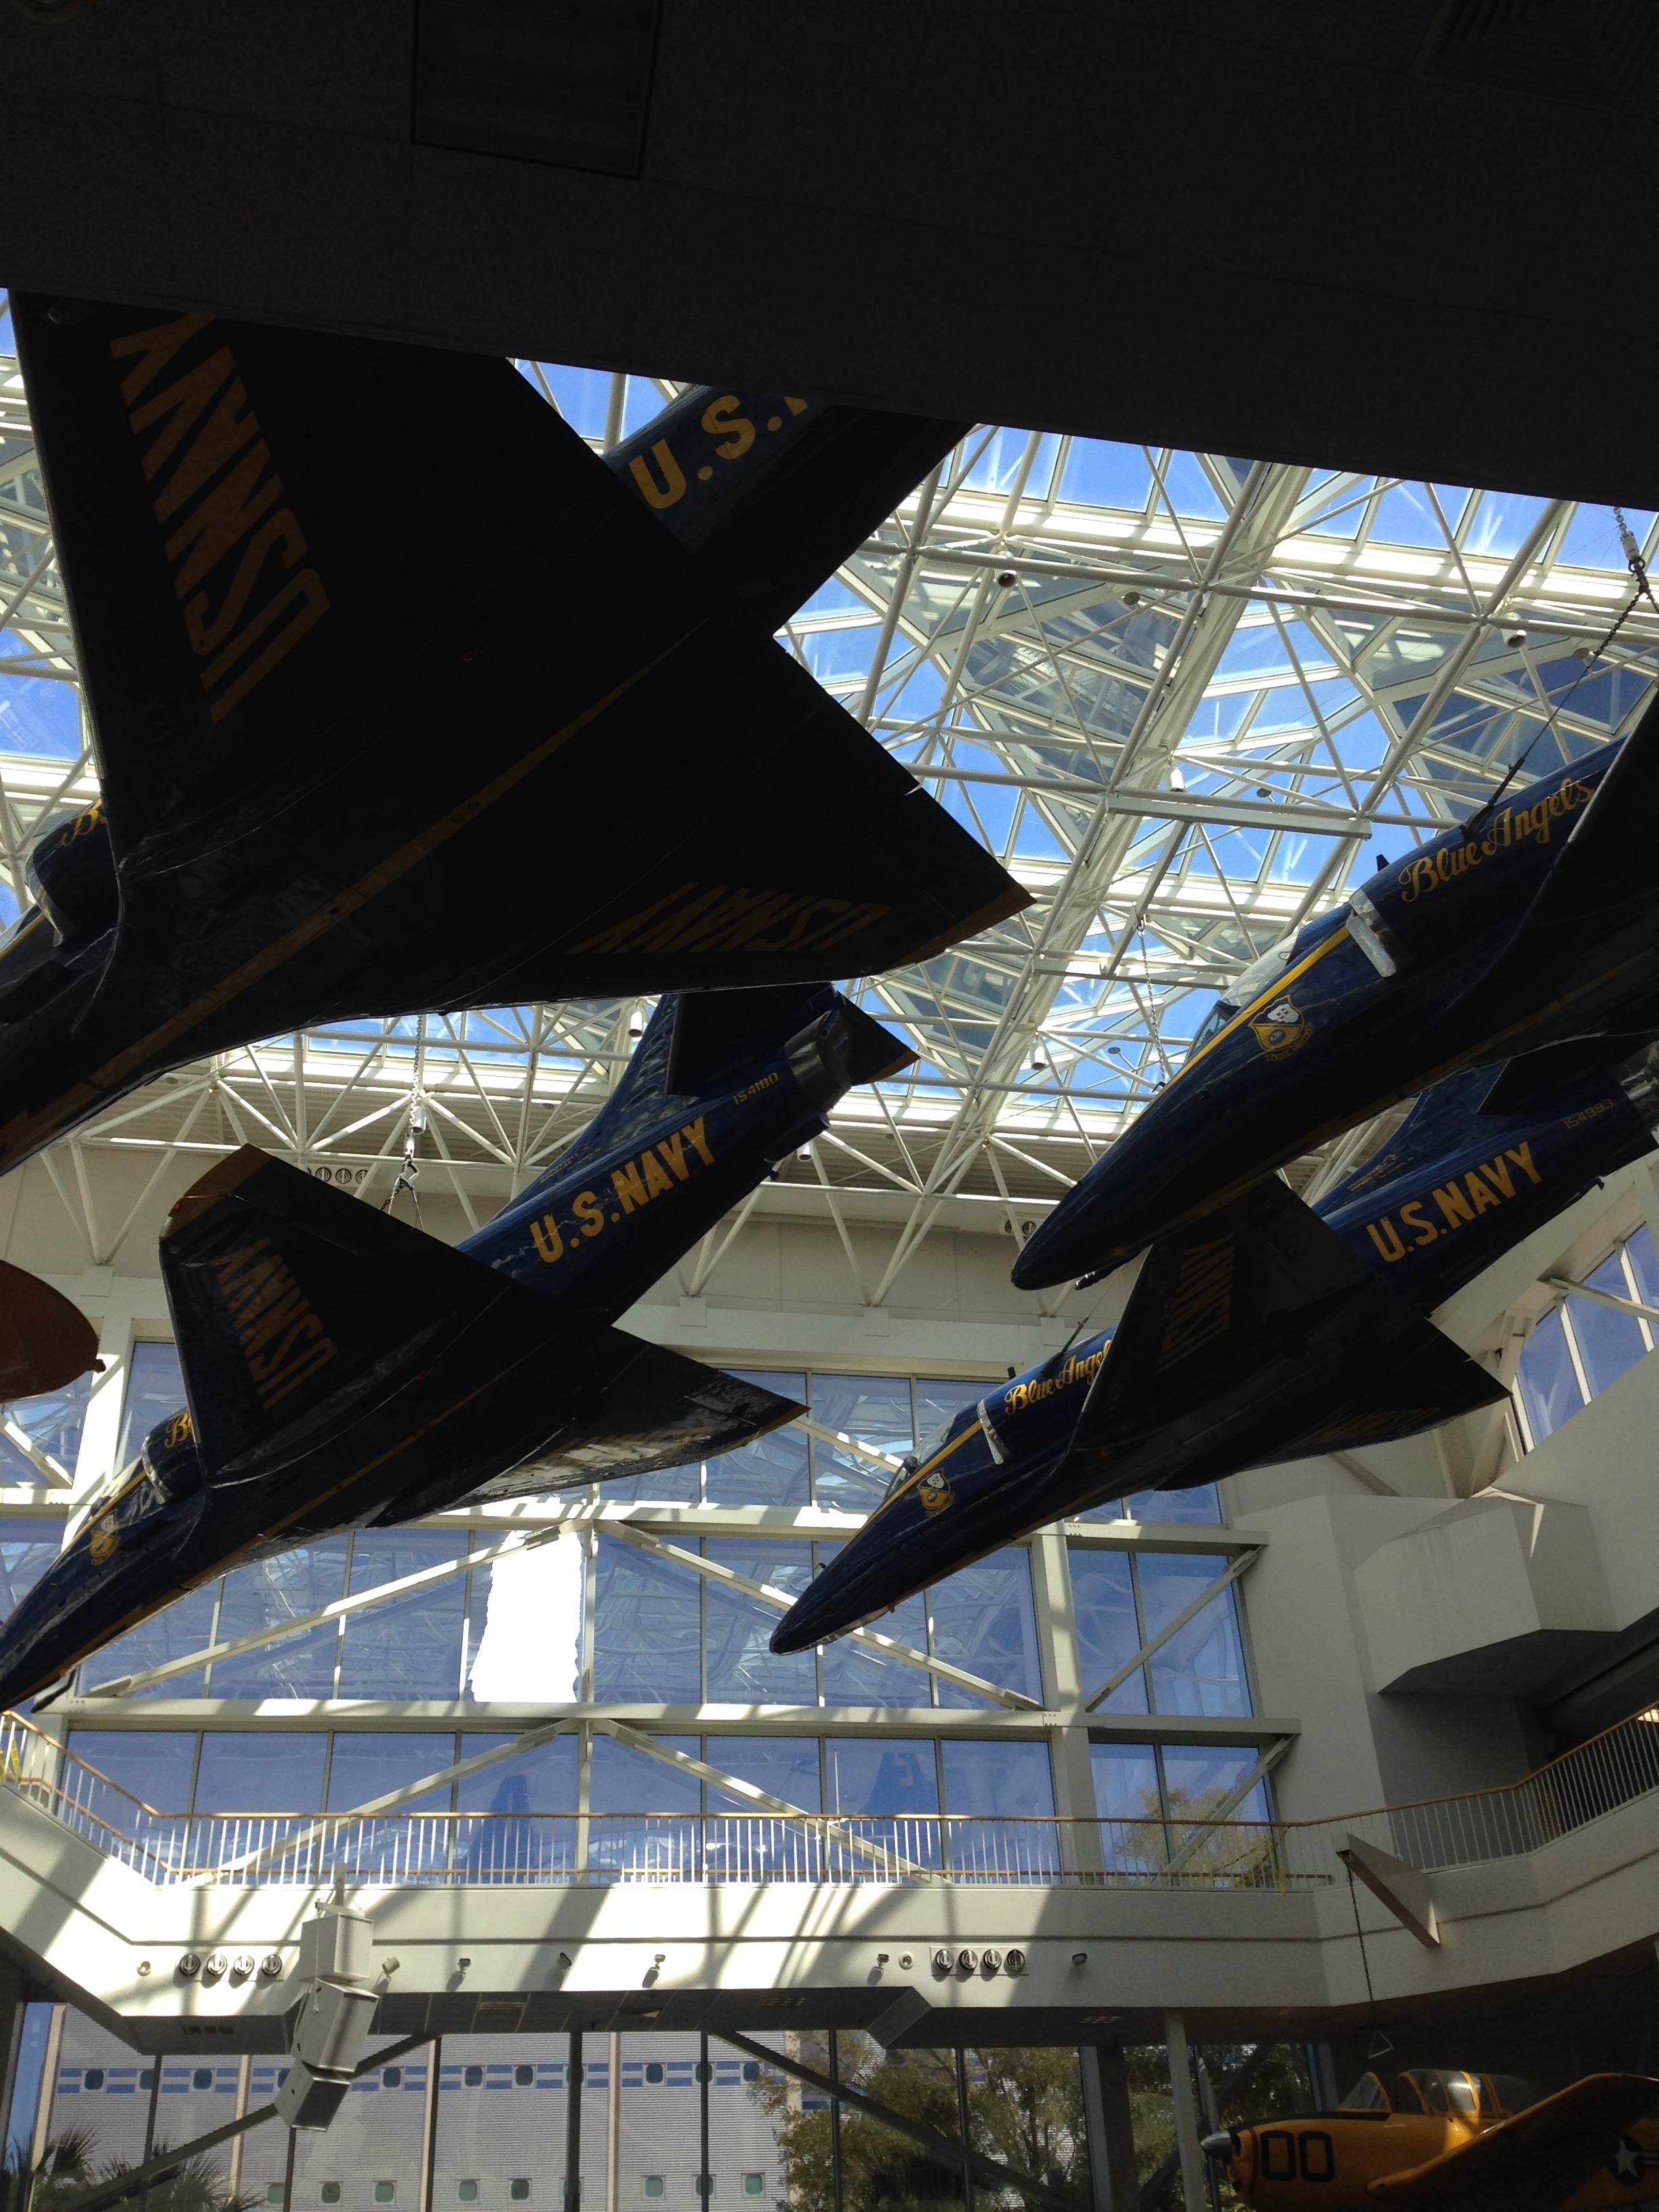 Blue Angels at the National Aviation Musuem at Pensacola Naval Air Station